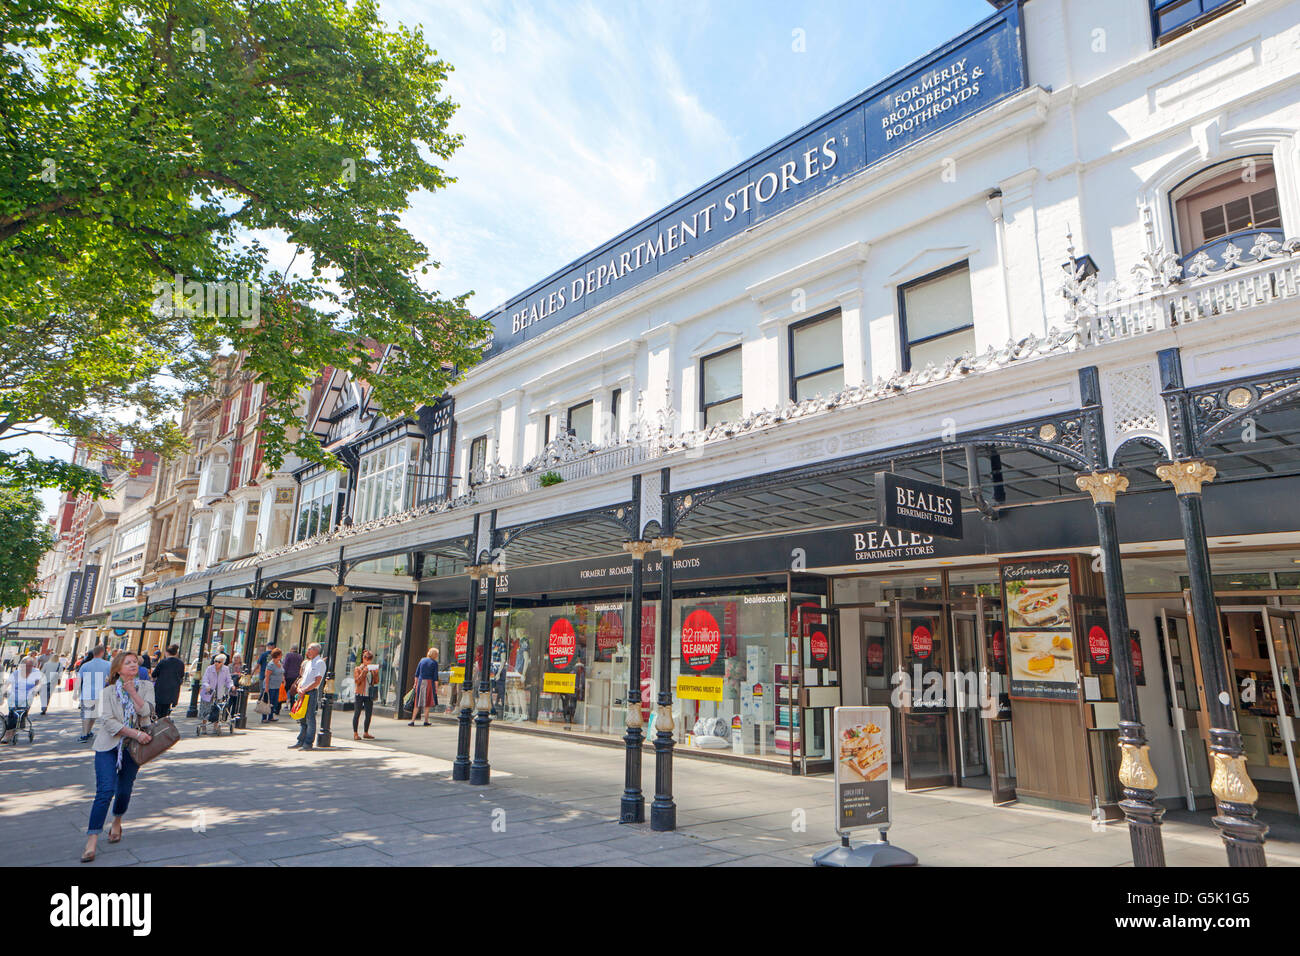 Beales Department Store _Shops and Shoppers in the retail sector of the  Victorian Town of Southport, in Merseyside, - Stock Image